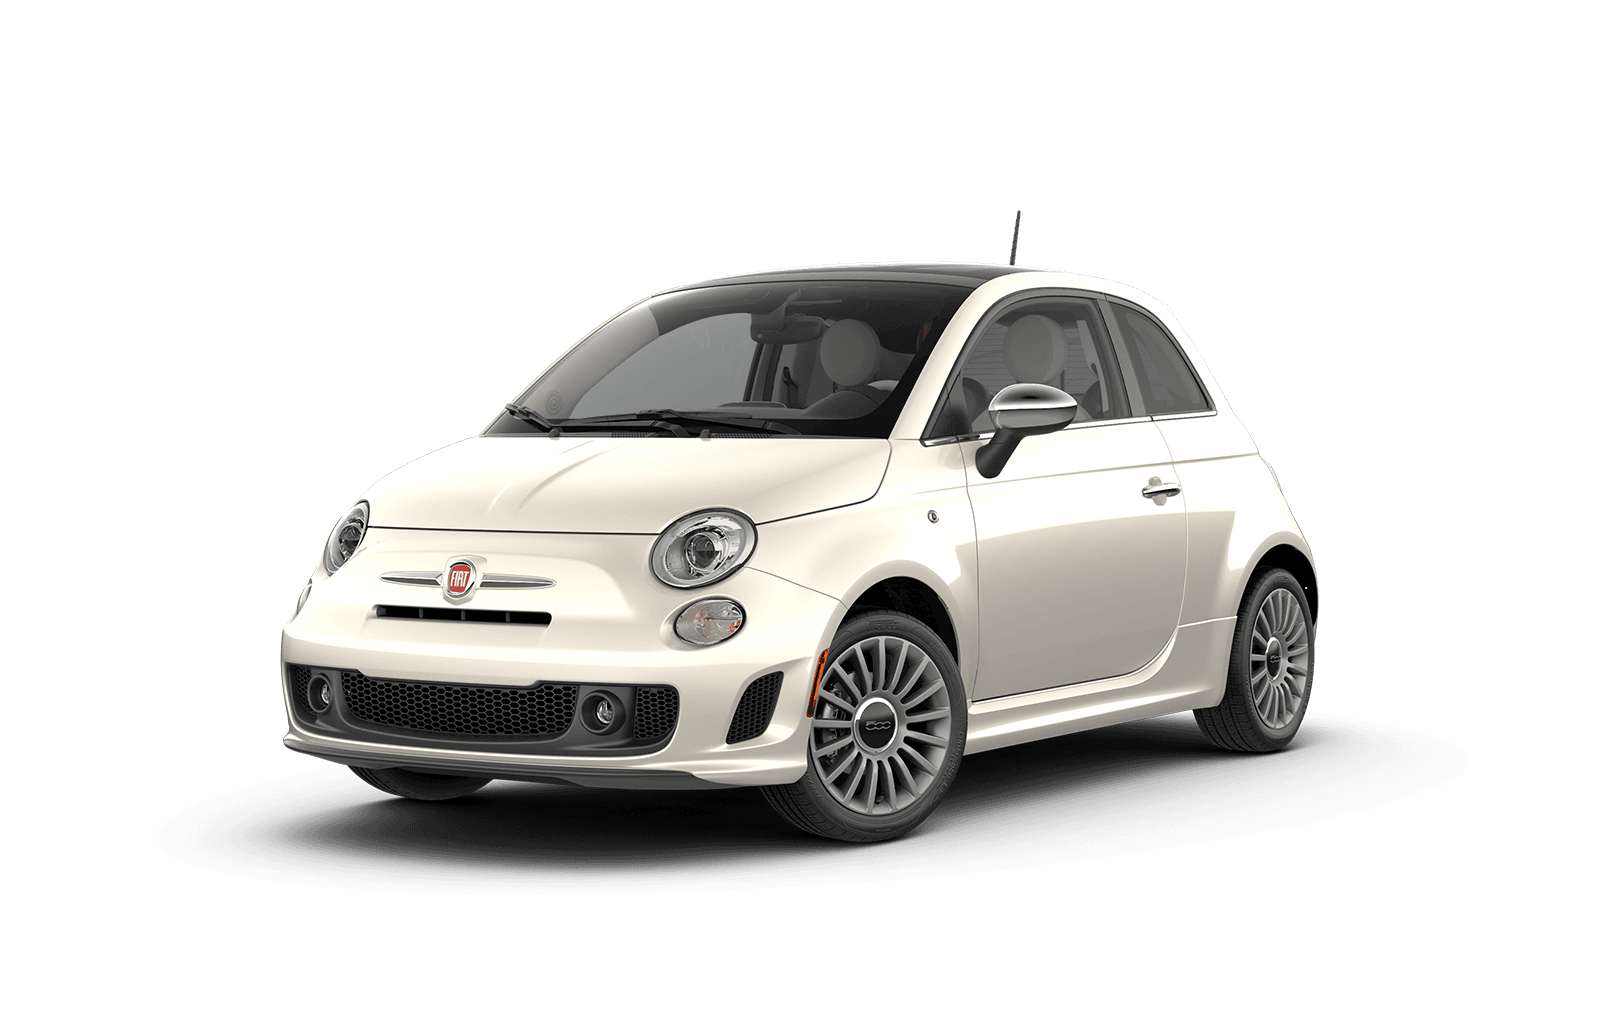 2018 FIAT 500 Full View in White with Wheels